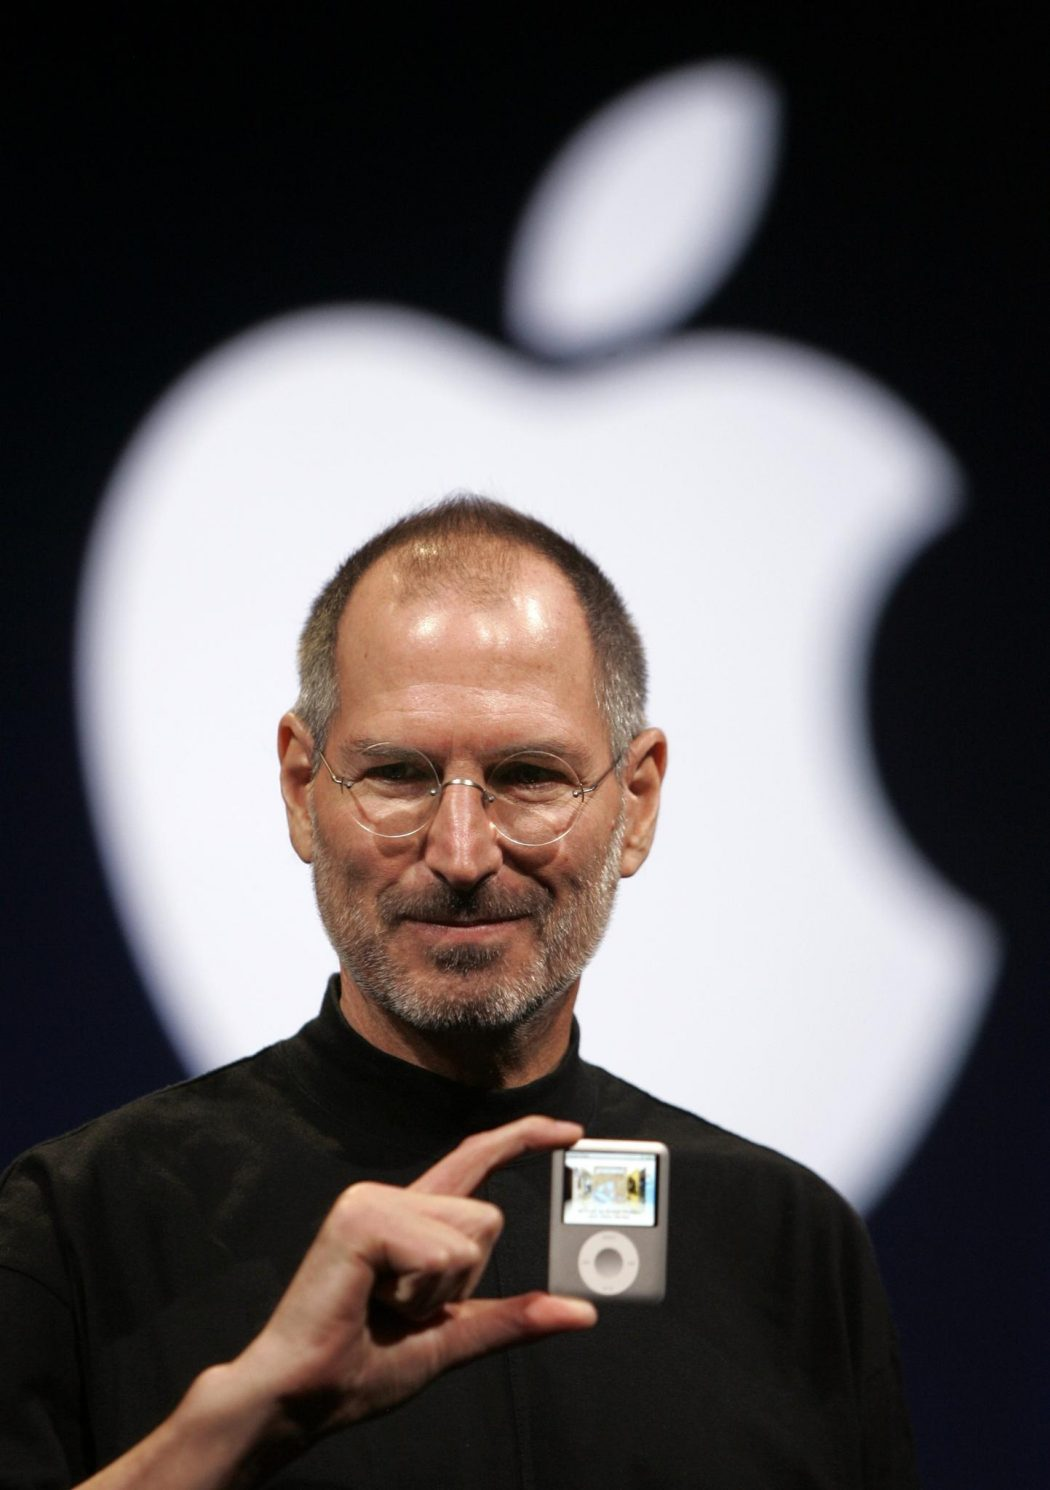 Books_Steve_Jobs-NYET434-0 Top 10 Most Effective Persons in the World